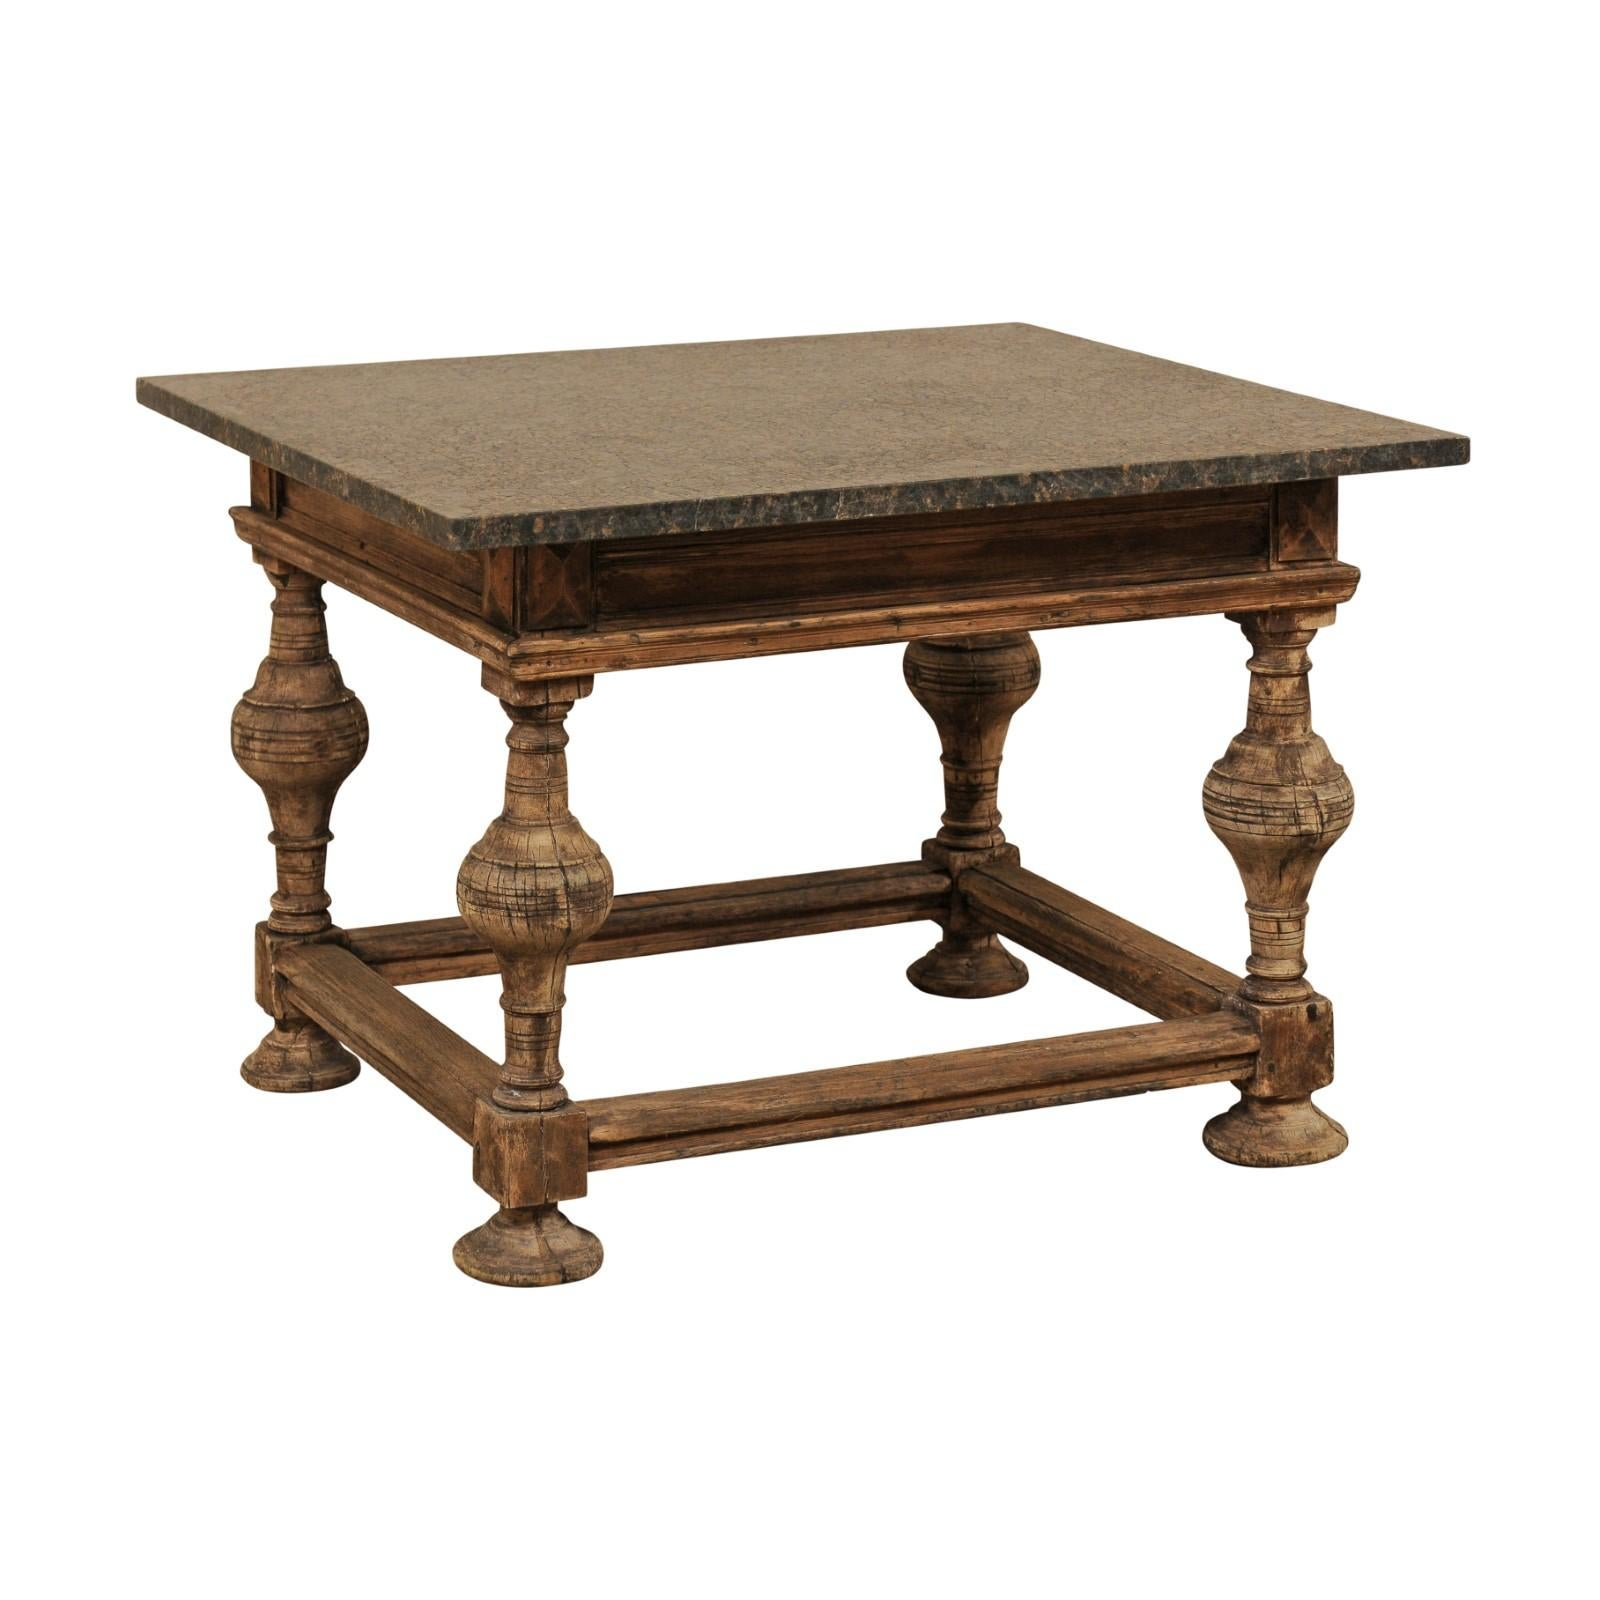 18th Century Swedish Baroque Occasional Table with New Honed Granite Top